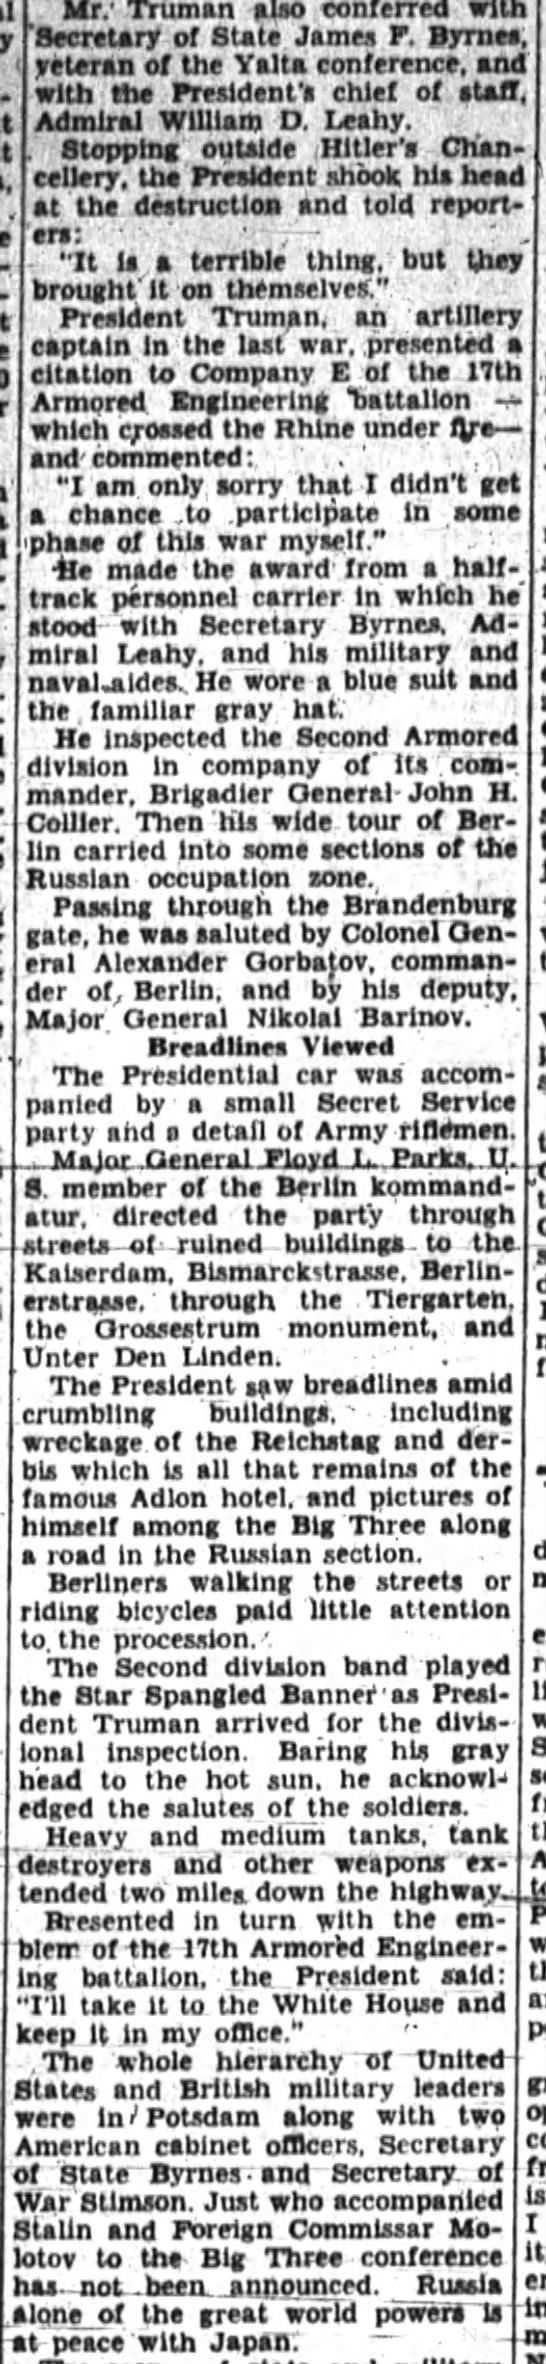 Poughkeepsie Journal (Poughkeepsie, Dutchess, New York, United States of America) · 16 Jul 1945